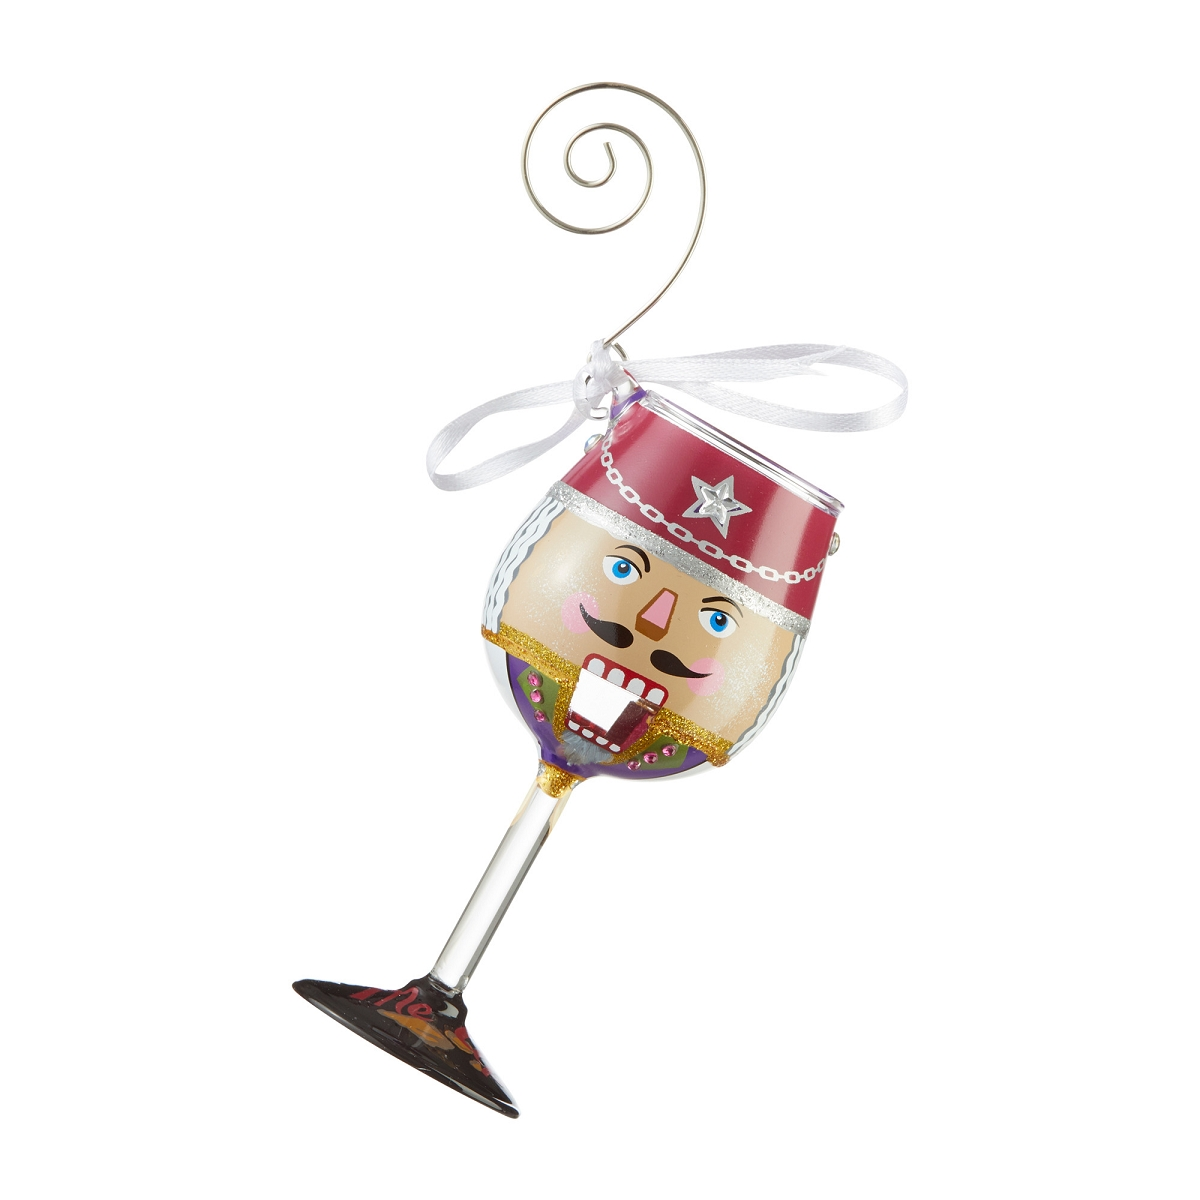 Lolita Mini Wine Glass Ornament - You Crack Me Up